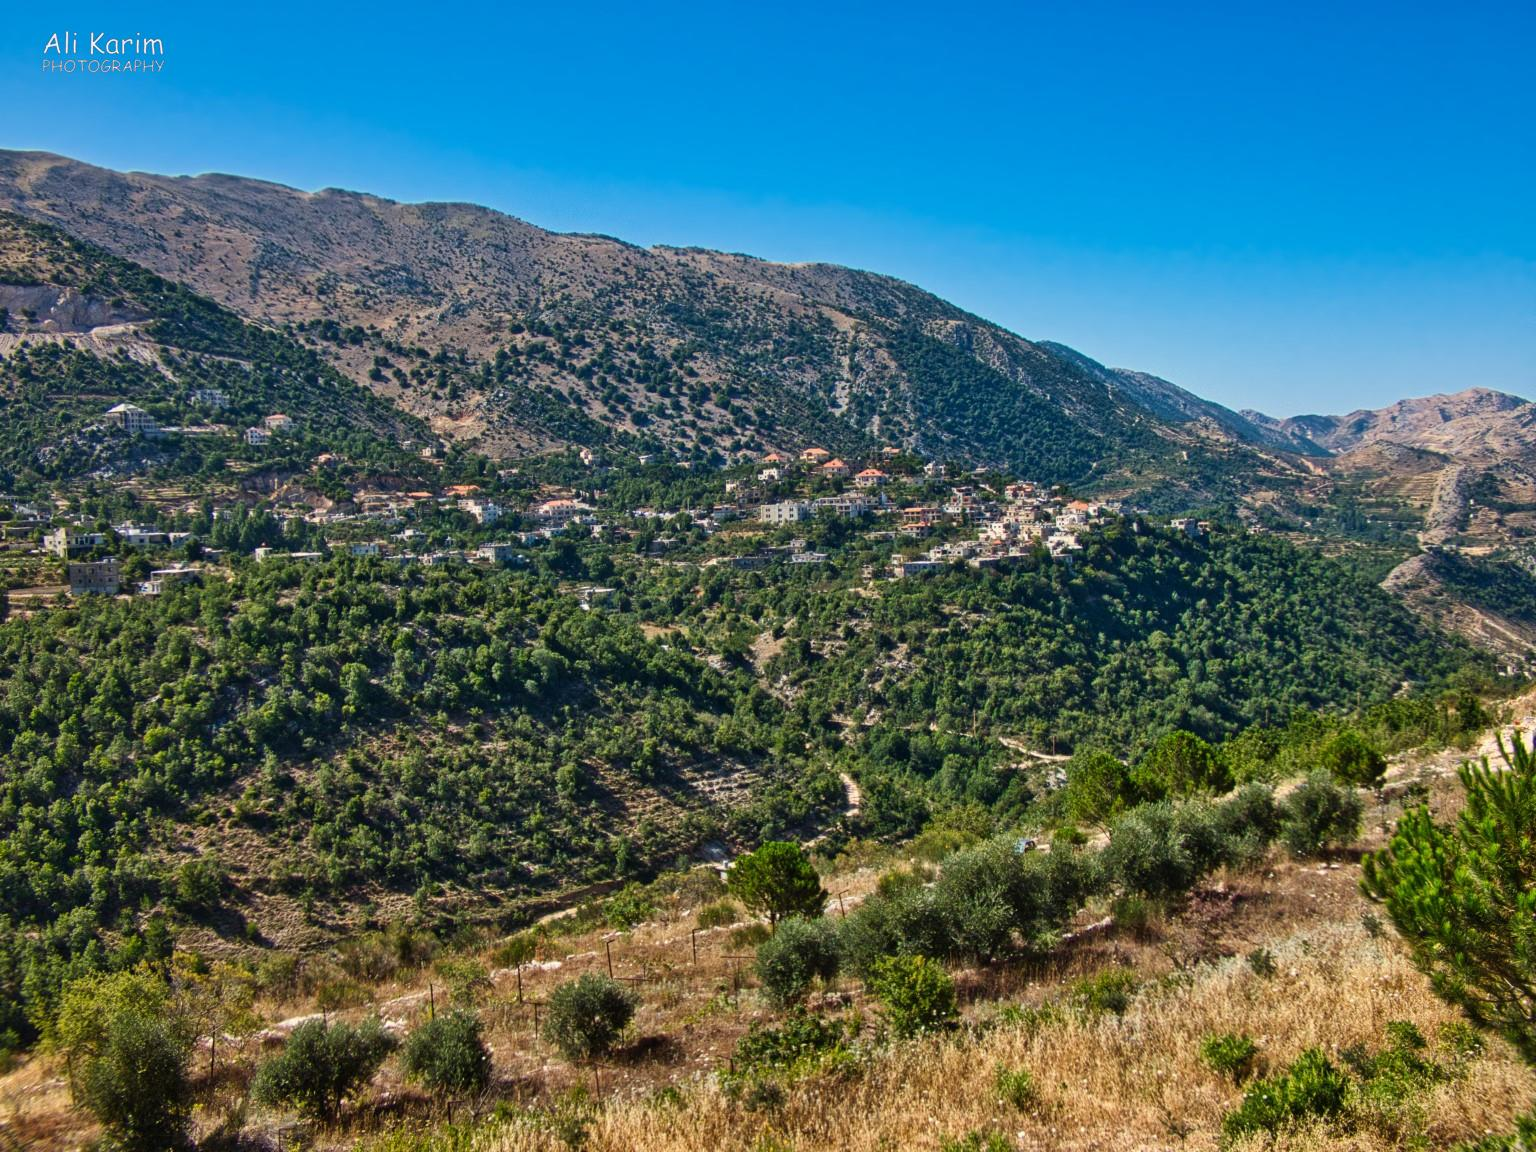 Bekaa Valley Winery, Chouf Mountains & the Druze Mresti village, with its wonderful Druze inhabitants